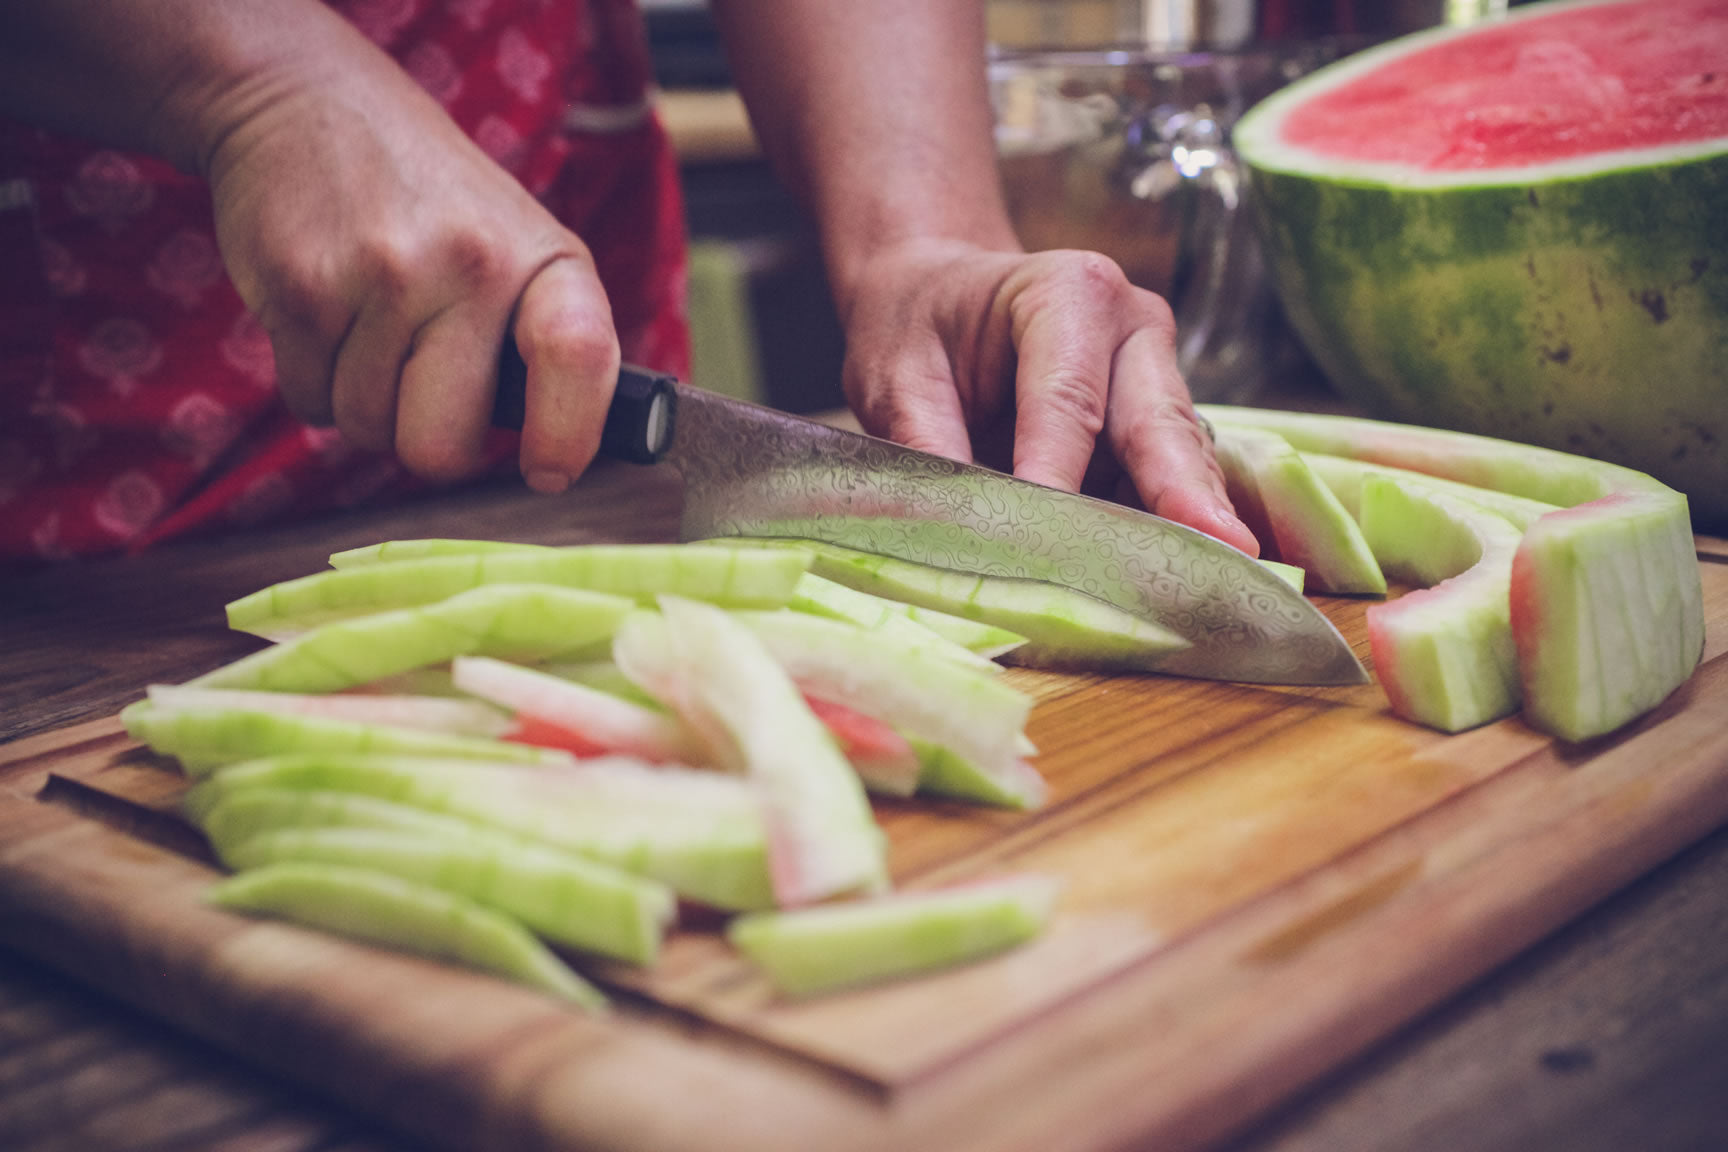 slicing watermelon